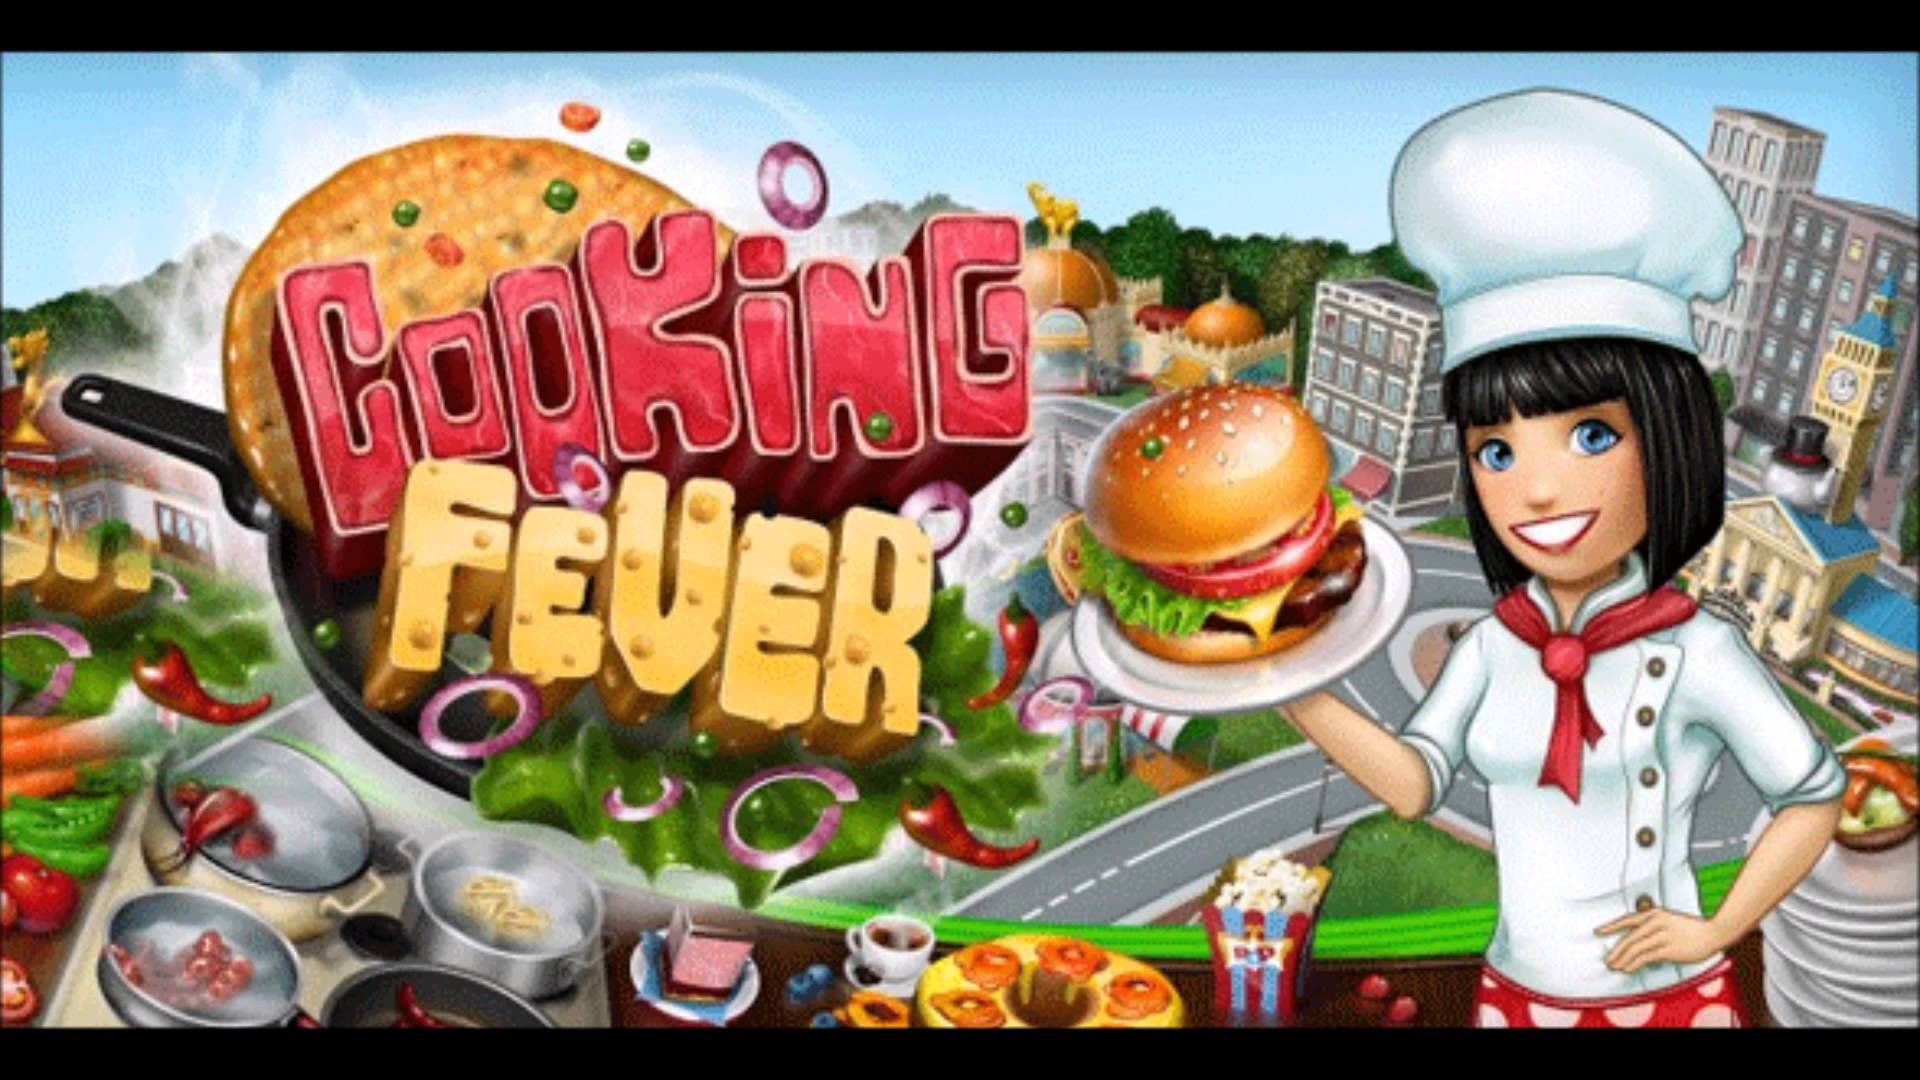 【COOKING.APPSHACKING.COM COOKING FEVER】 Coins and Gems FOR ANDROID IOS PC PLAYSTATION | 100% WORKING METHOD | GET UNLIMITED RESOURCES NOW